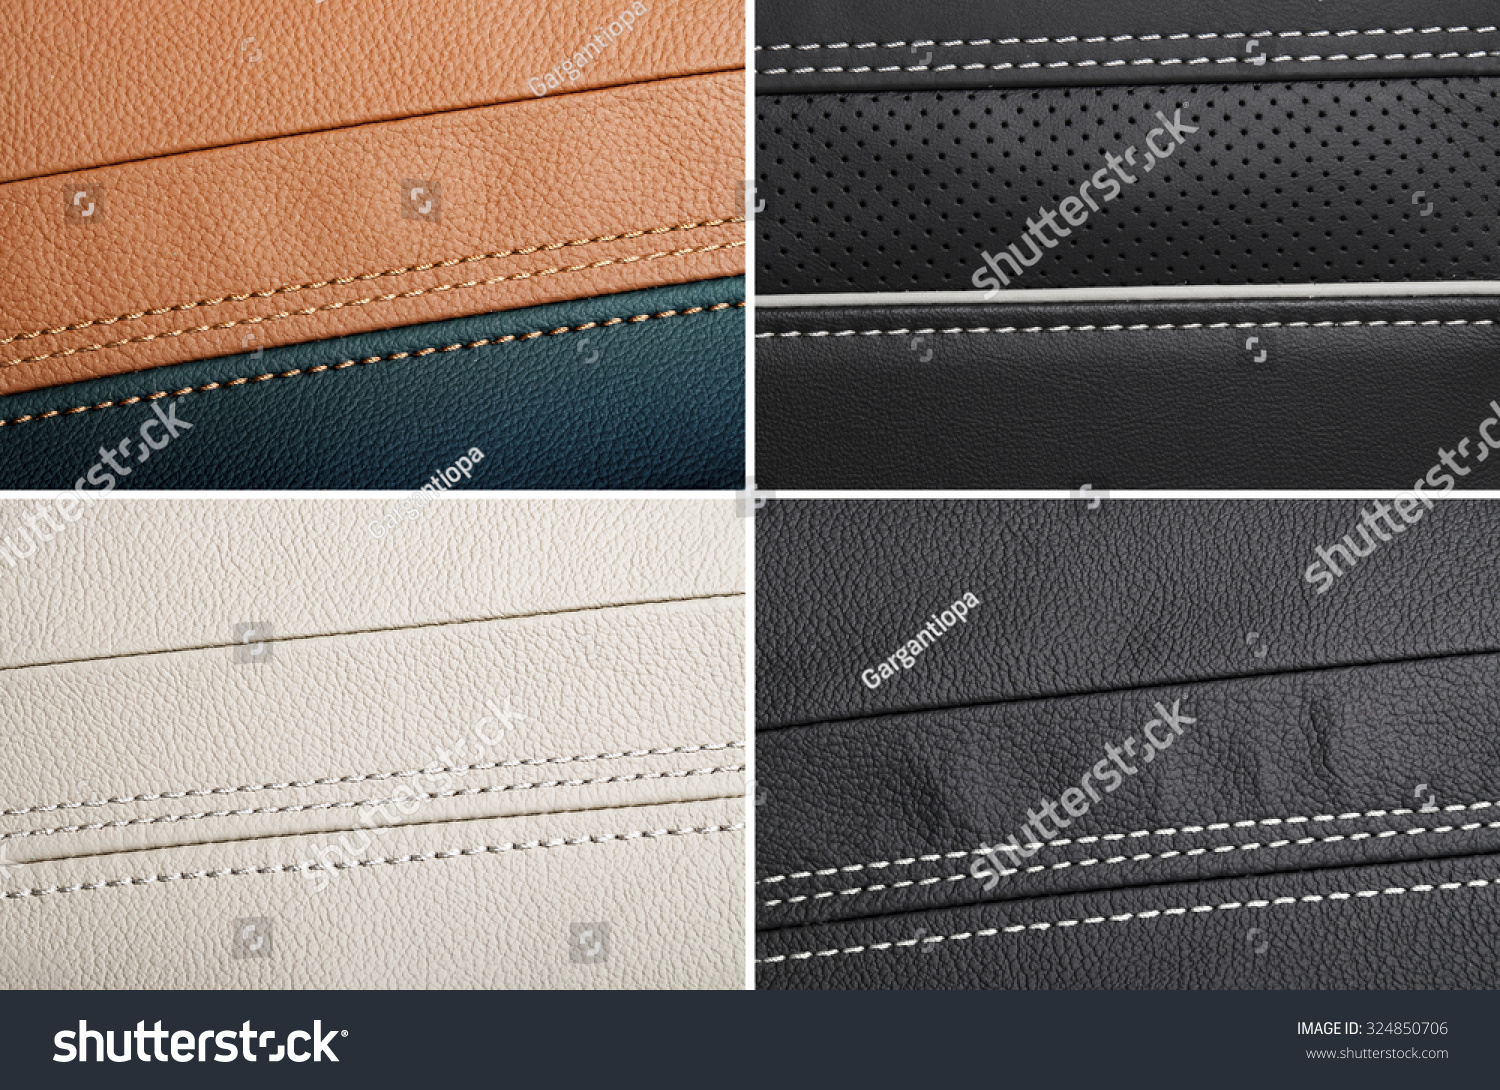 Collage Different Choice Car Interior Leather Stock Photo 324850706 Shutterstock